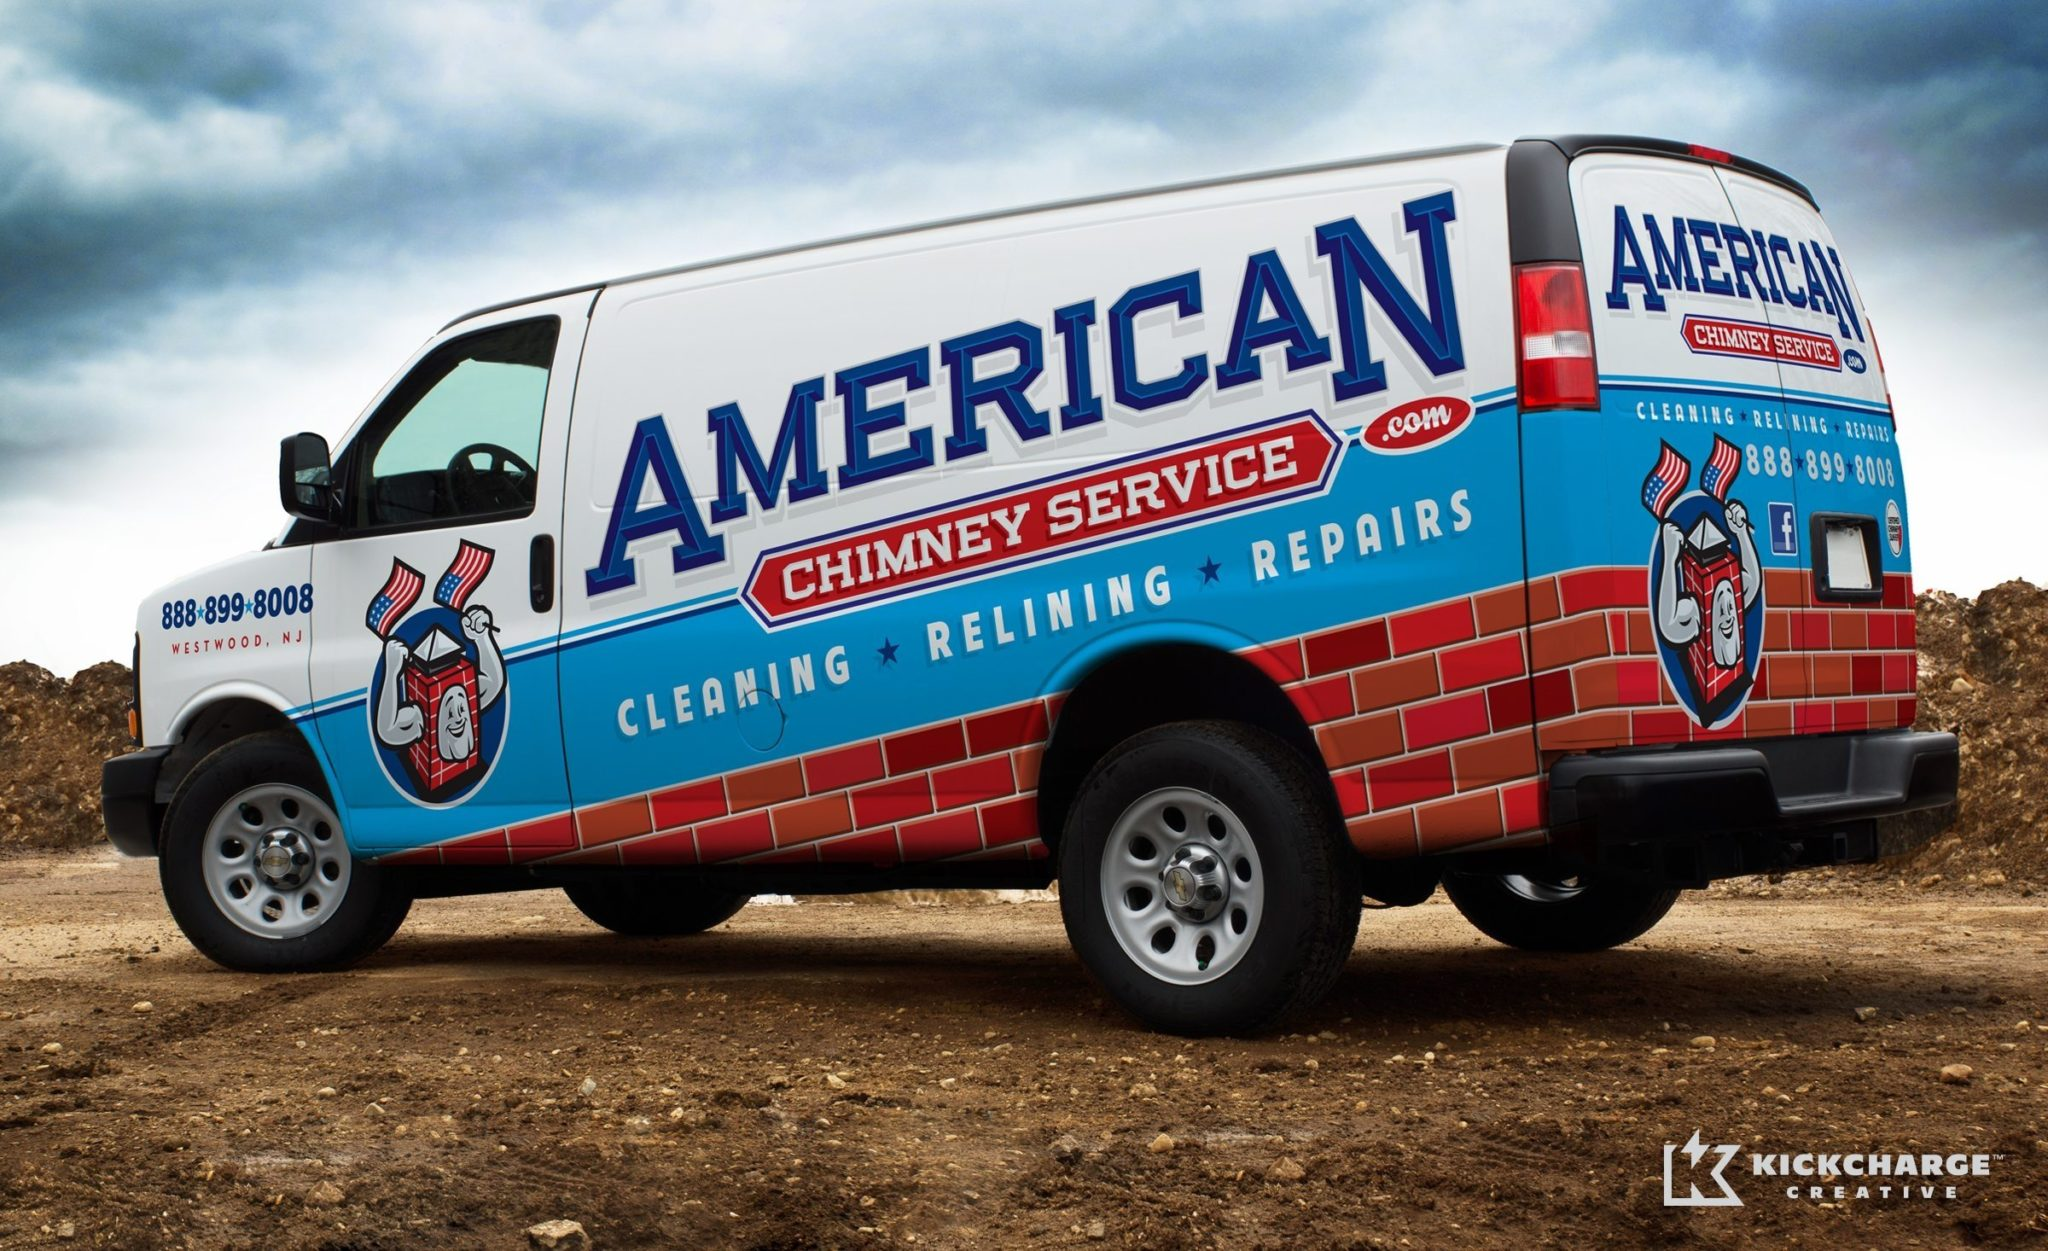 Fleet advertising and truck wrap design for this NJ chimney contractor.